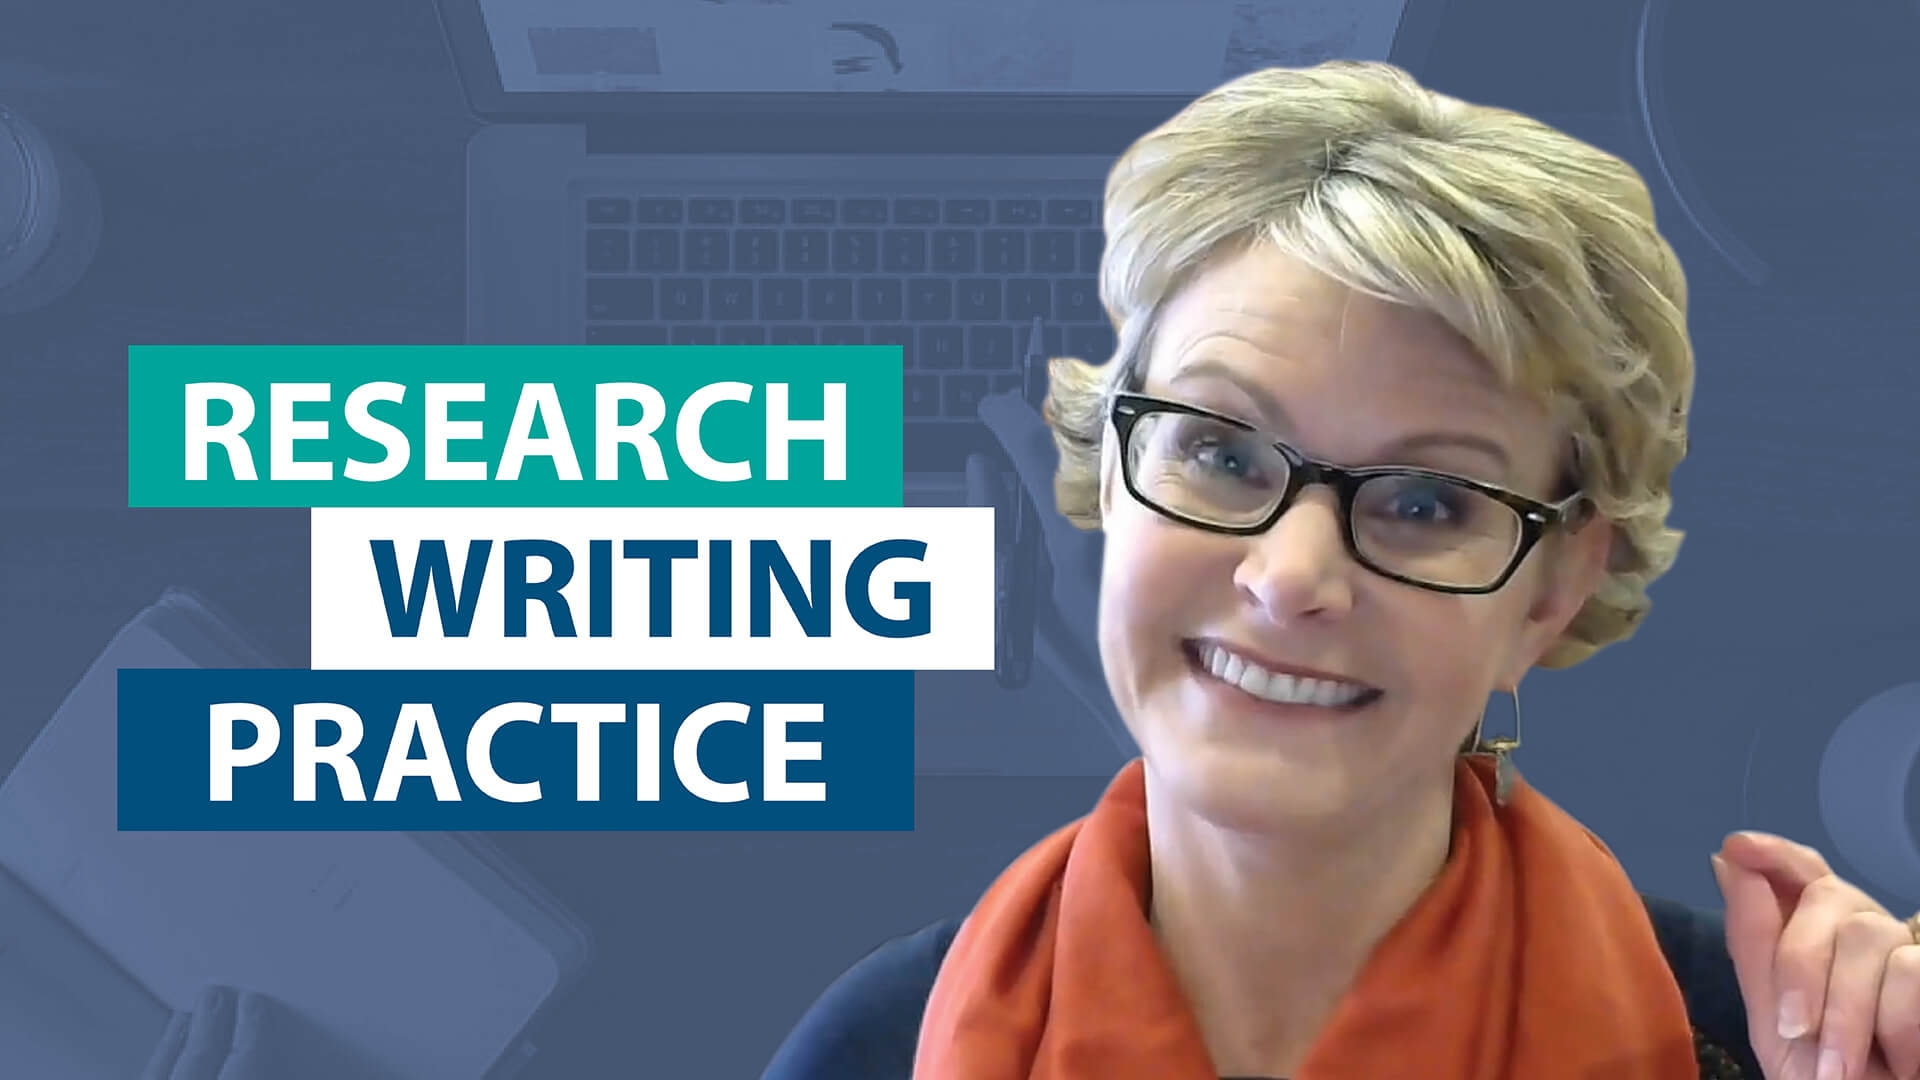 Ask Smekens: How do I balance long, traditional versus short research-writing tasks?